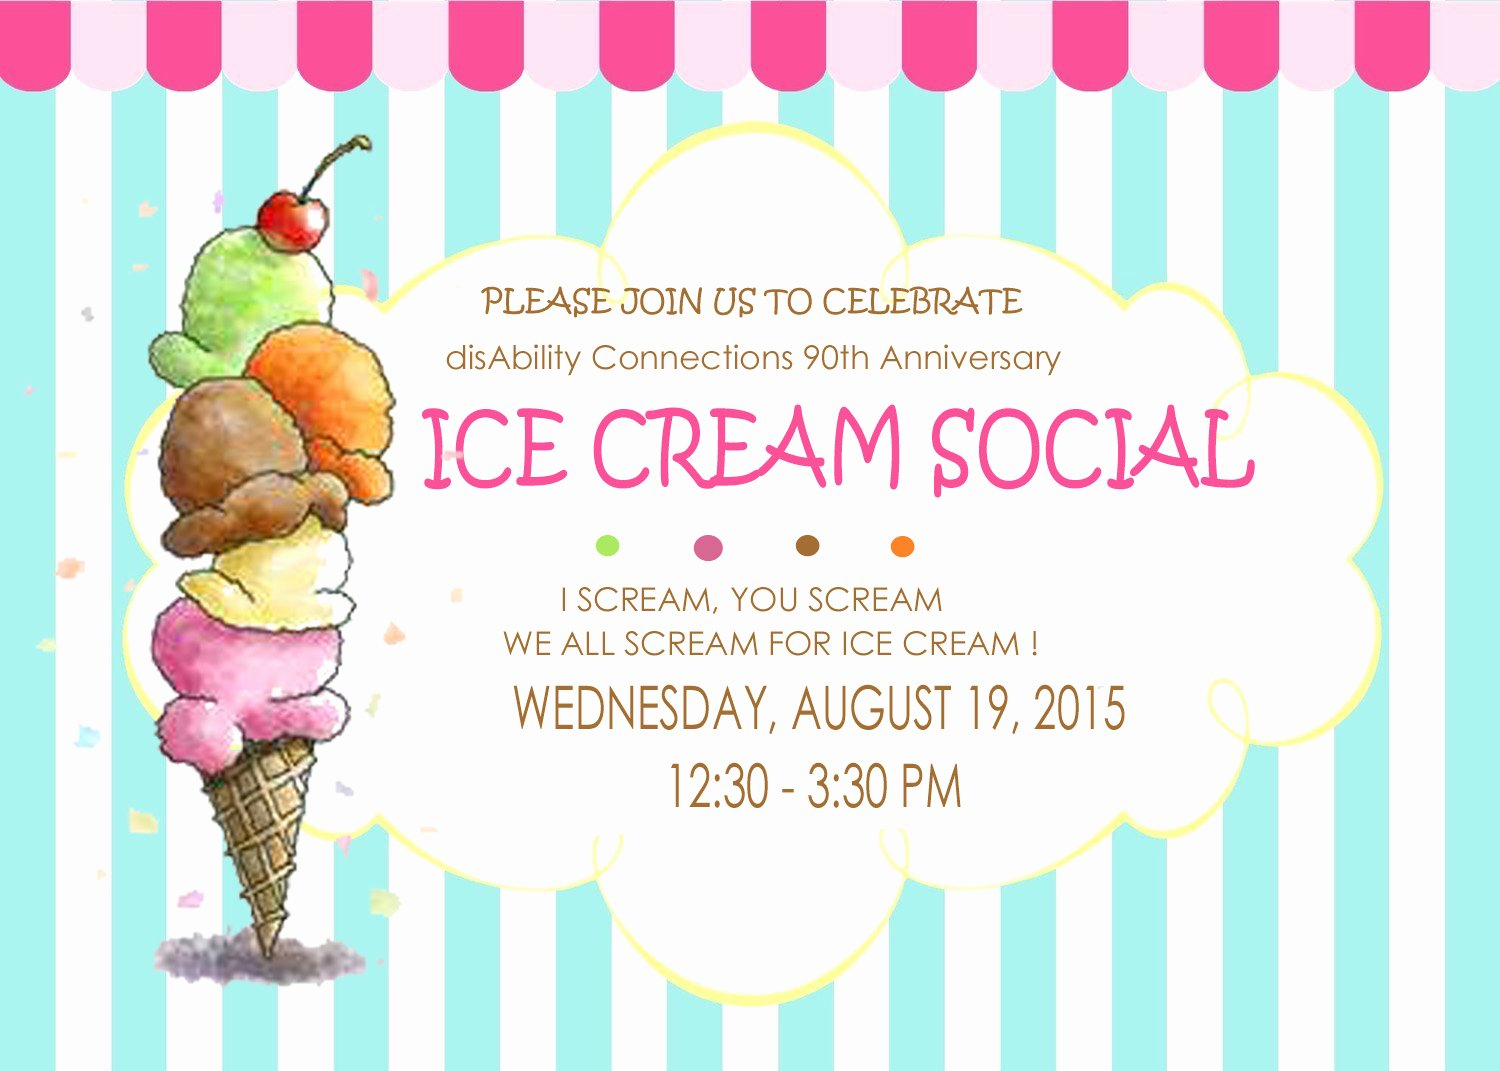 Ice Cream social Flyer Best Of Disability Connections Inc Ice Cream social 90th